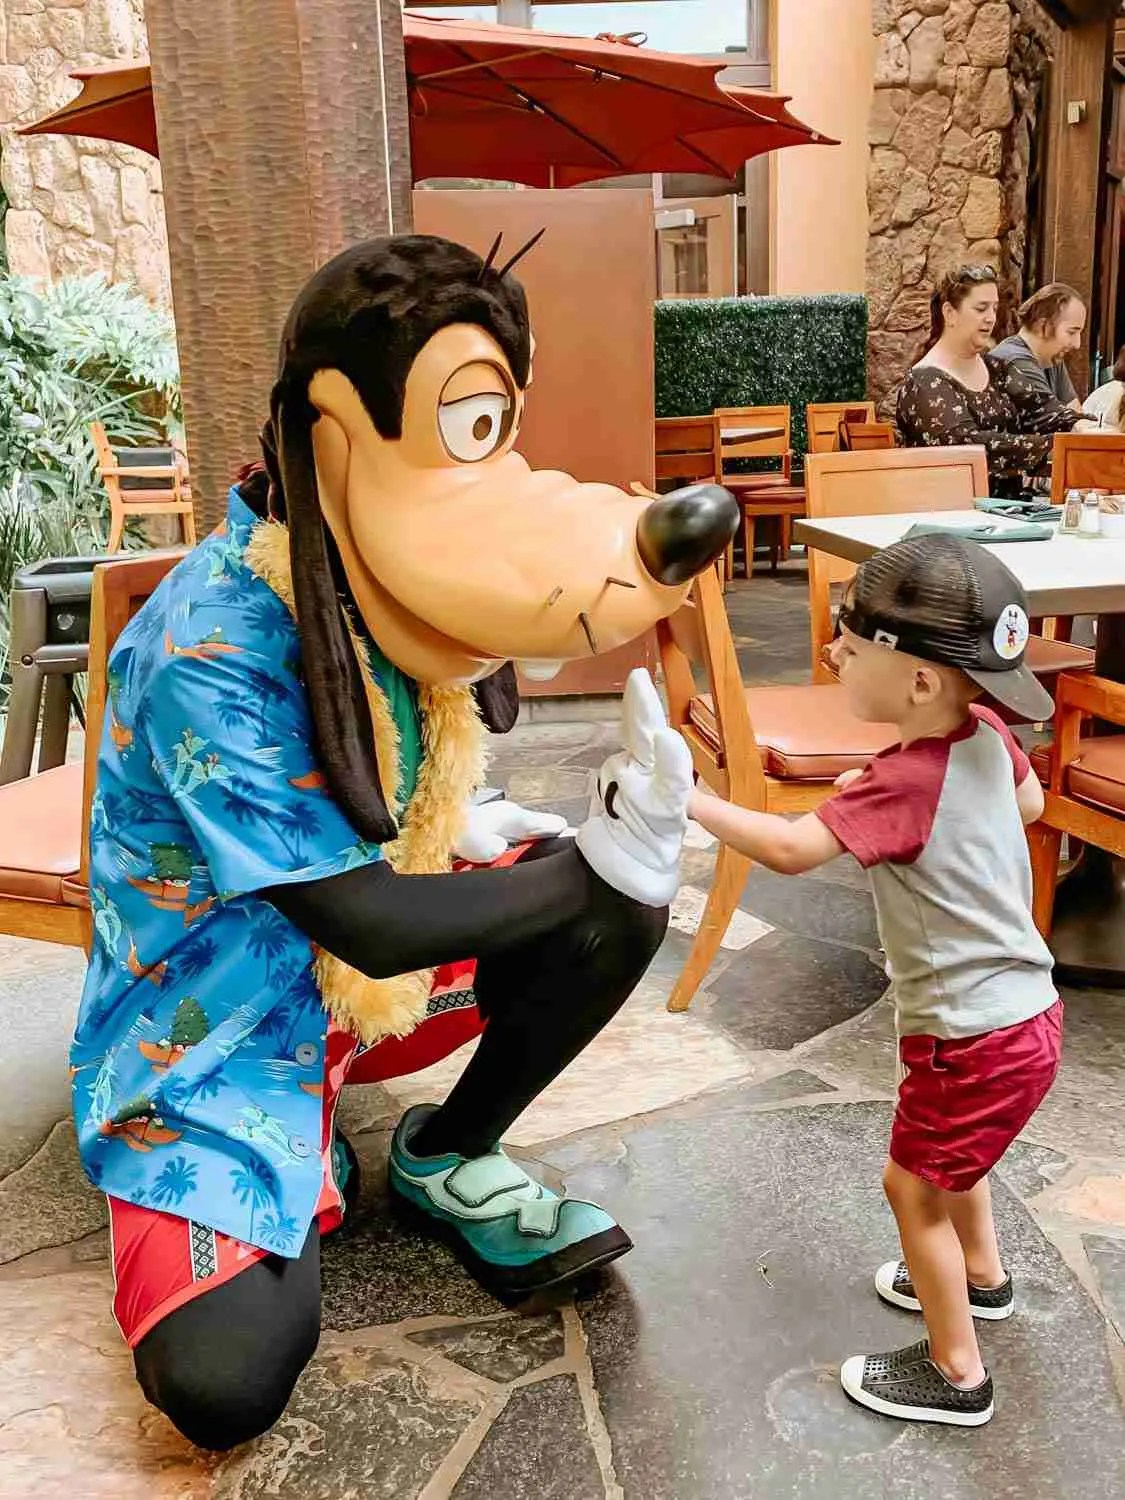 Little boy giving Goofy a high five at the Disney Character Breakfast at Aulani